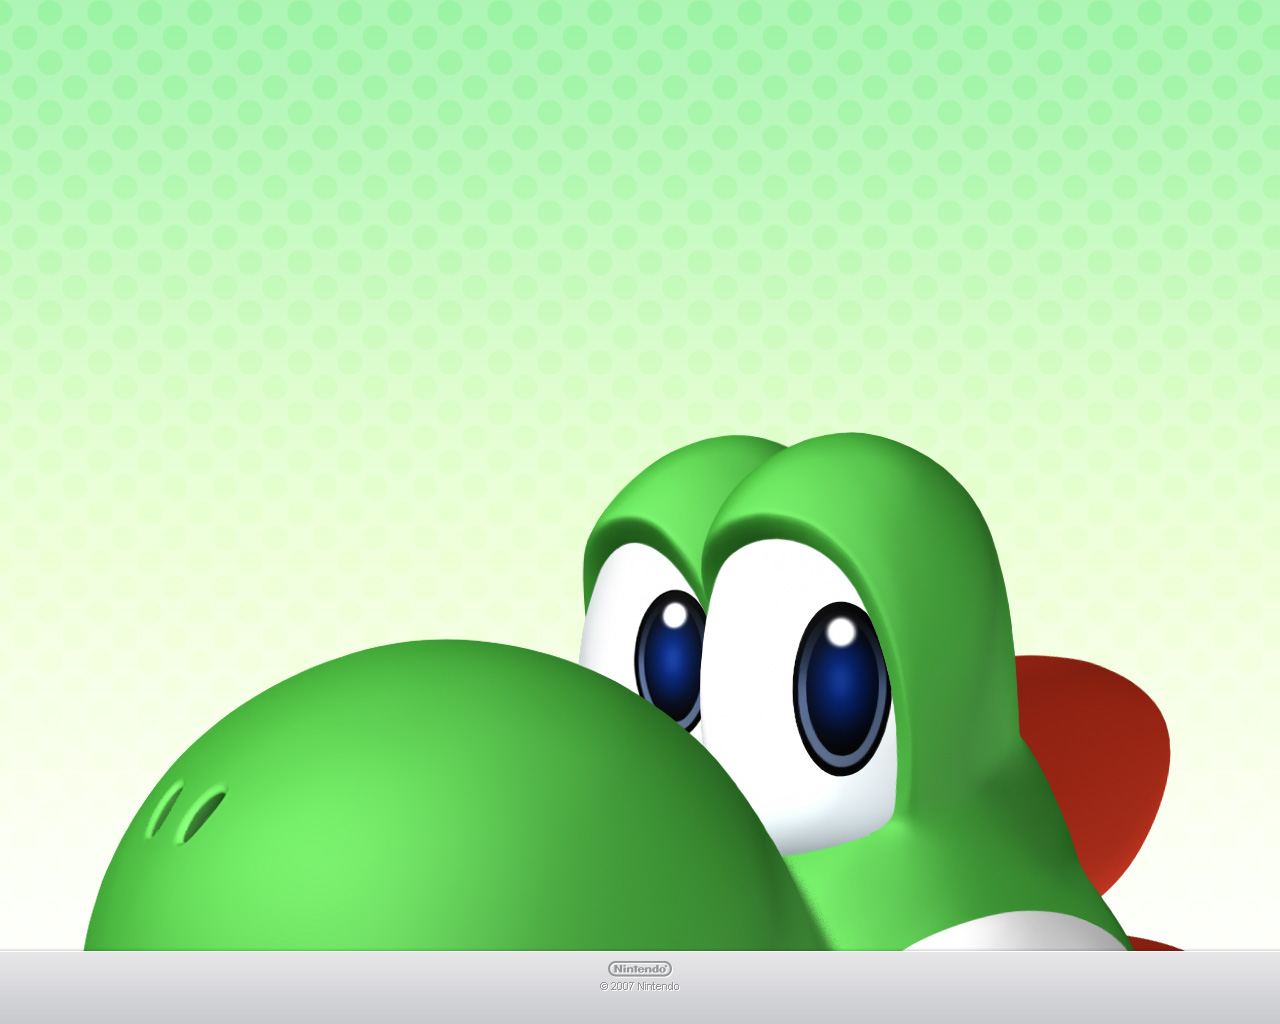 Yoshi images Yoshi HD wallpaper and background photos